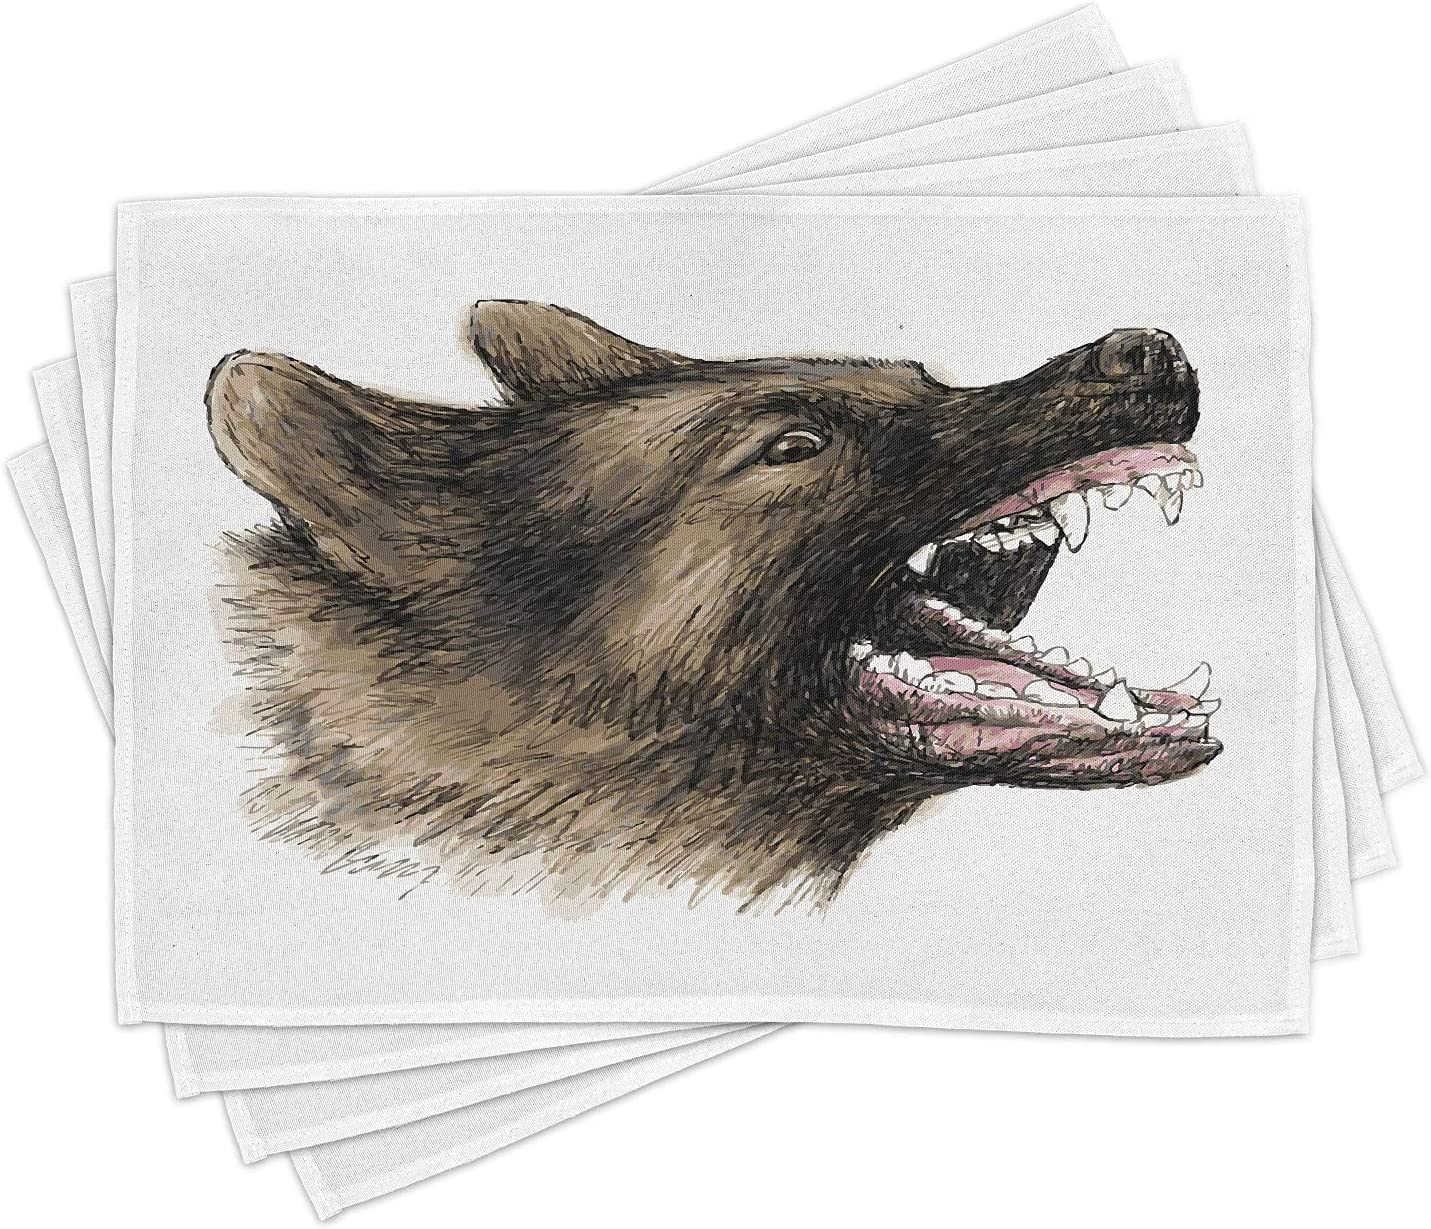 Quality Table Placemats Little Snoring Gifts Set of 4 German Shepherd